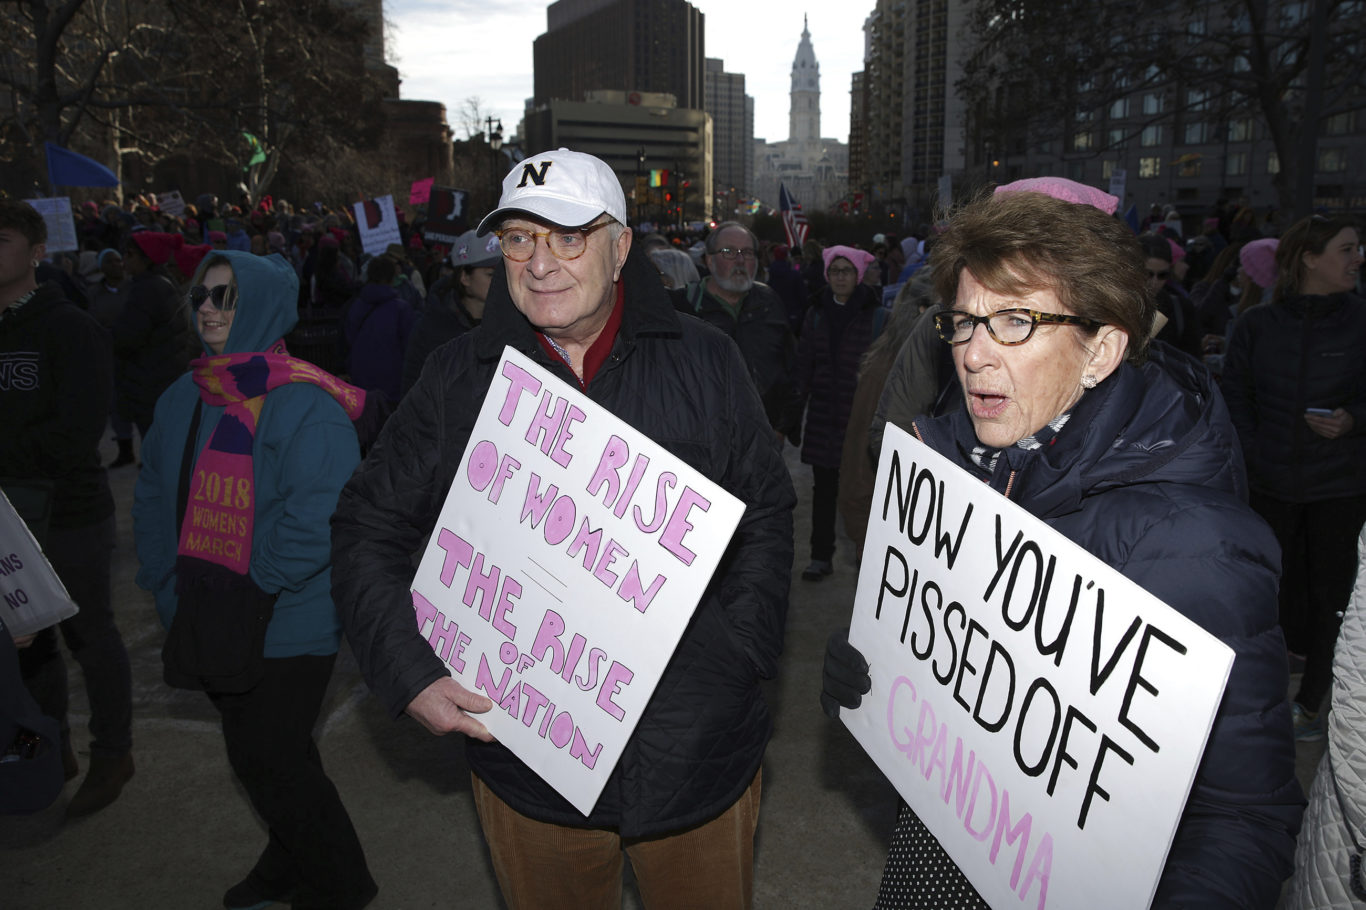 Jay and Peggy Chiappa at the start of the Women's March in Philadelphia (David Maialetti/AP)